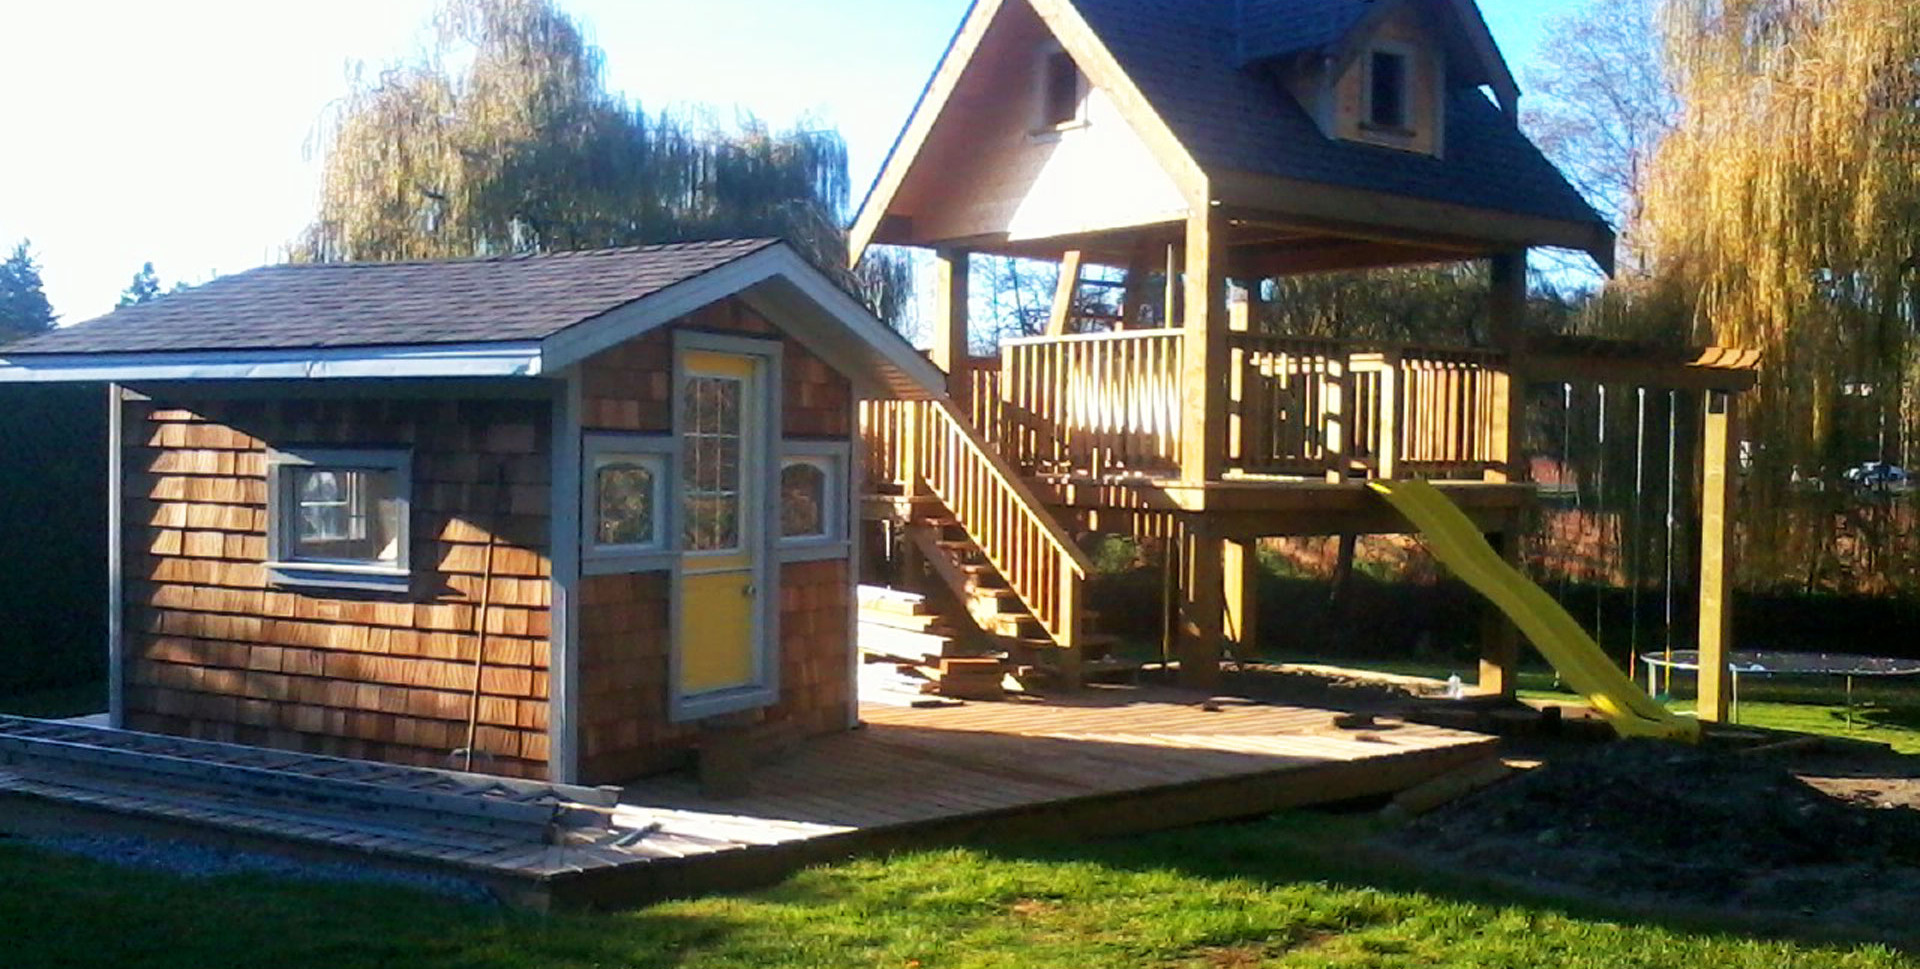 Adventure Playground & Playhouse